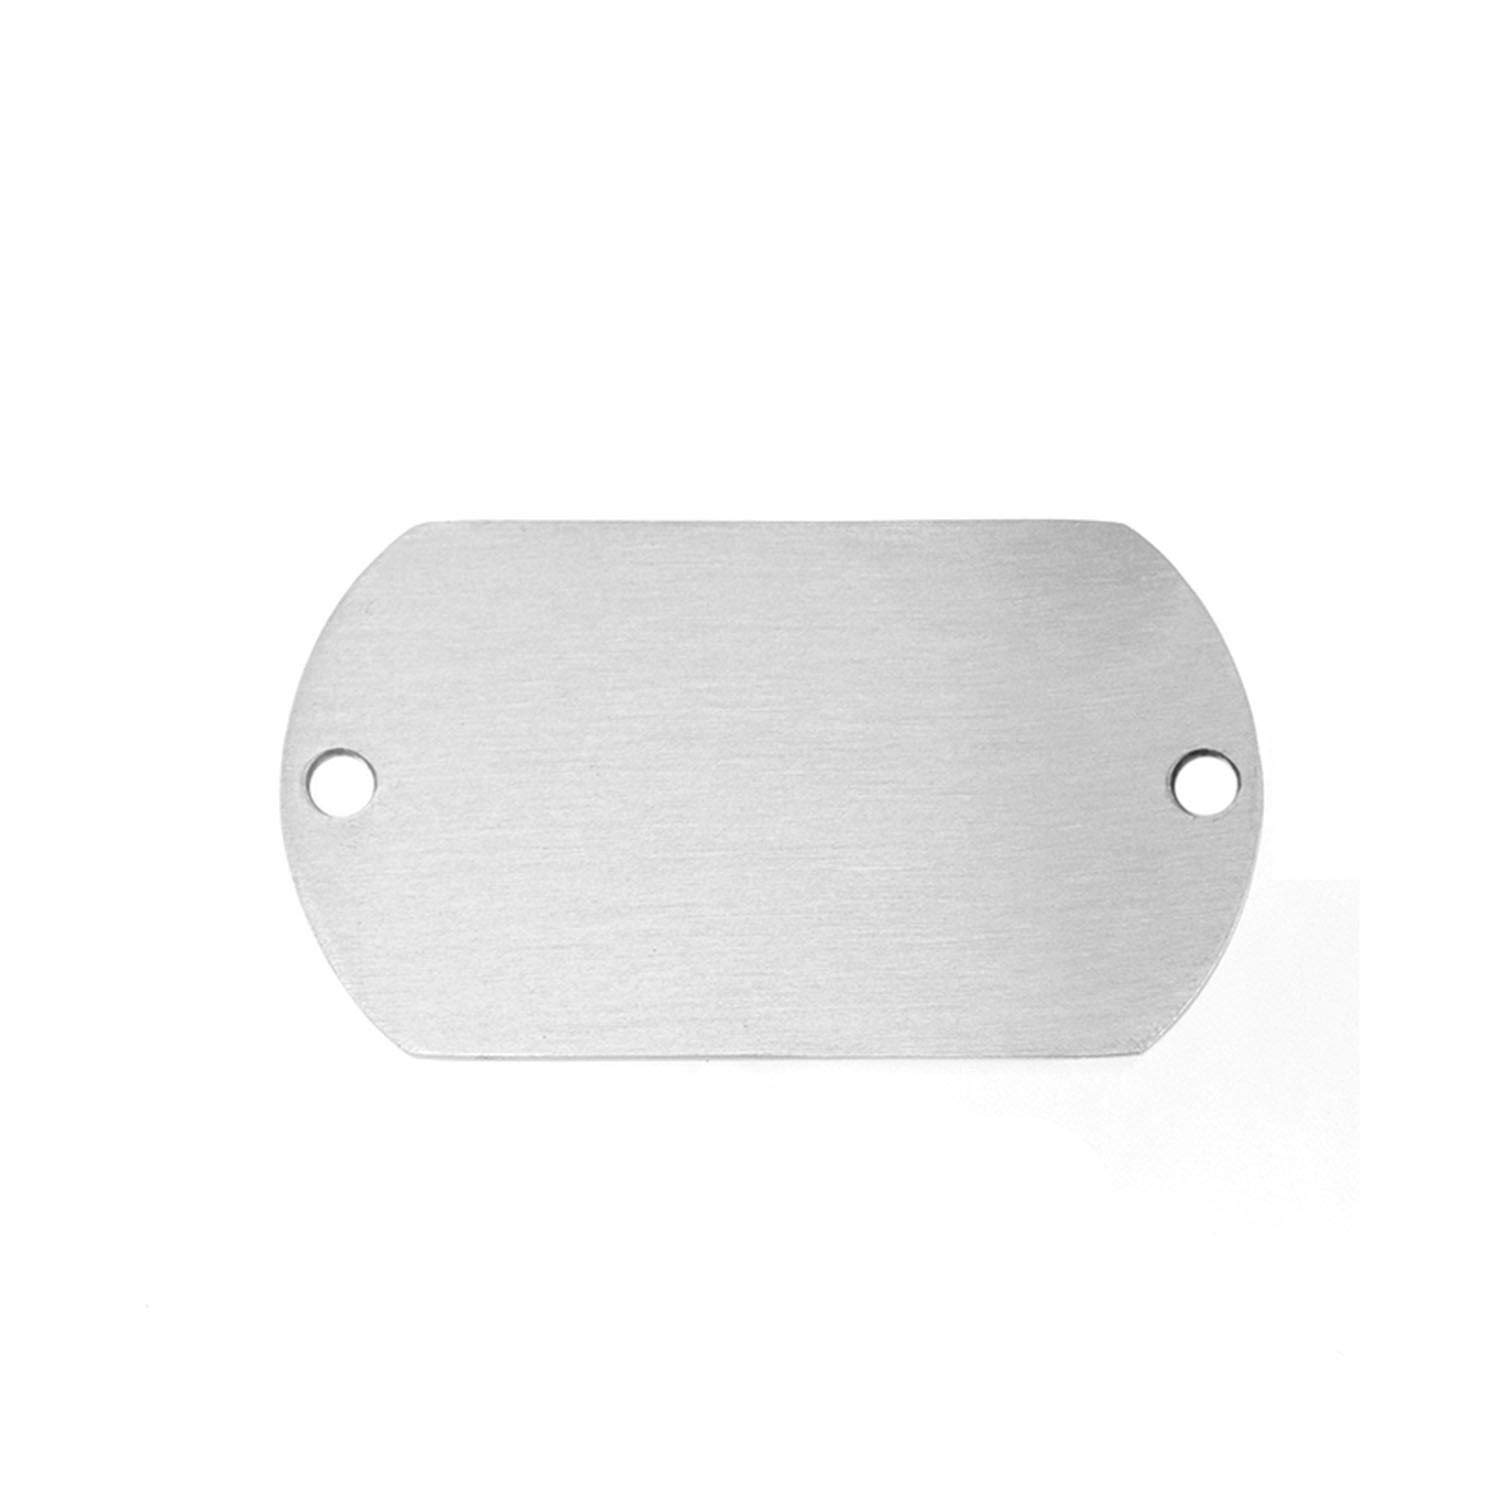 Stainless Steel Matte Surface 2 Loop Holes Dog Tag Blank Id Tags Both Sides Brush Polished 50 Pcs,22x36steel